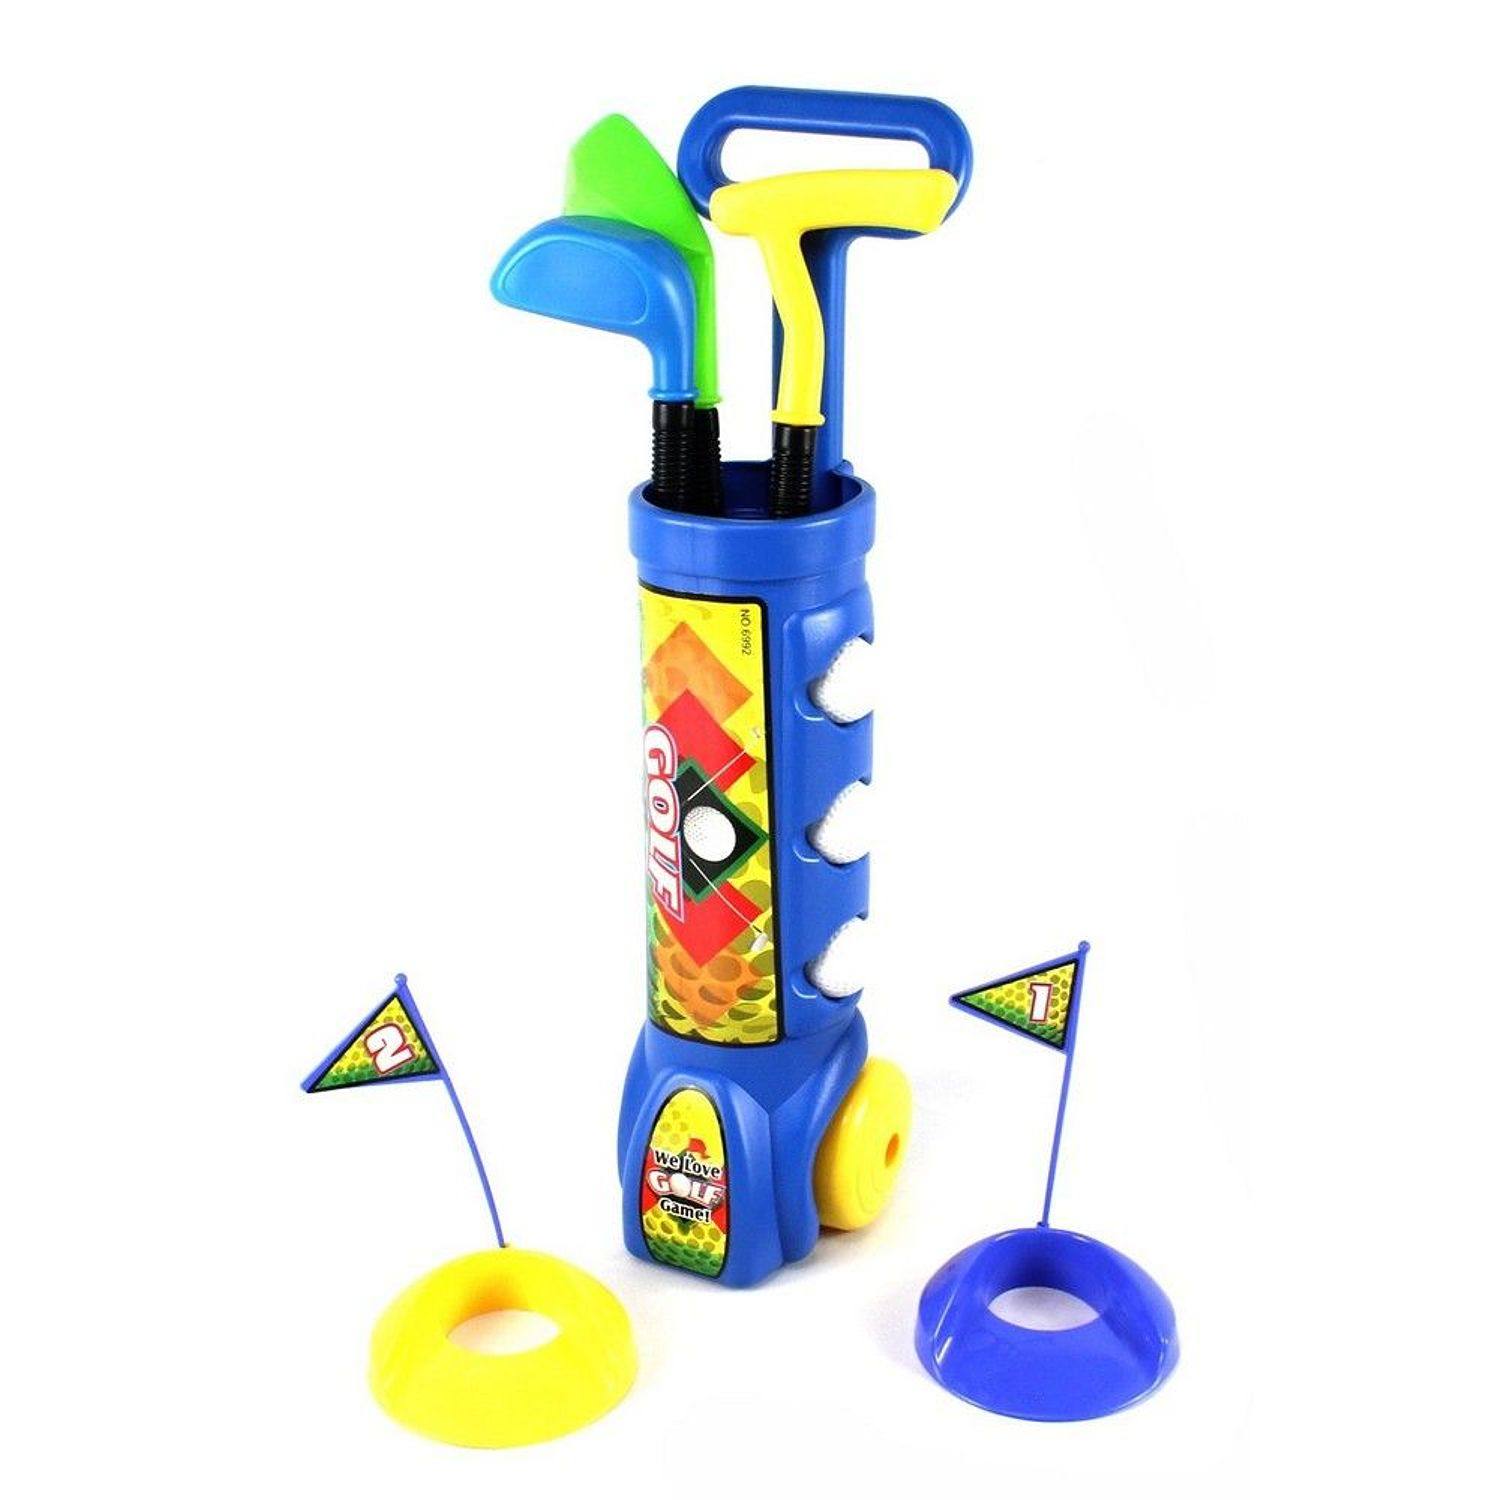 Deluxe Kid's Happy Golfer Toy Golf Set Playstation 311 Blue (Gift Idea) by